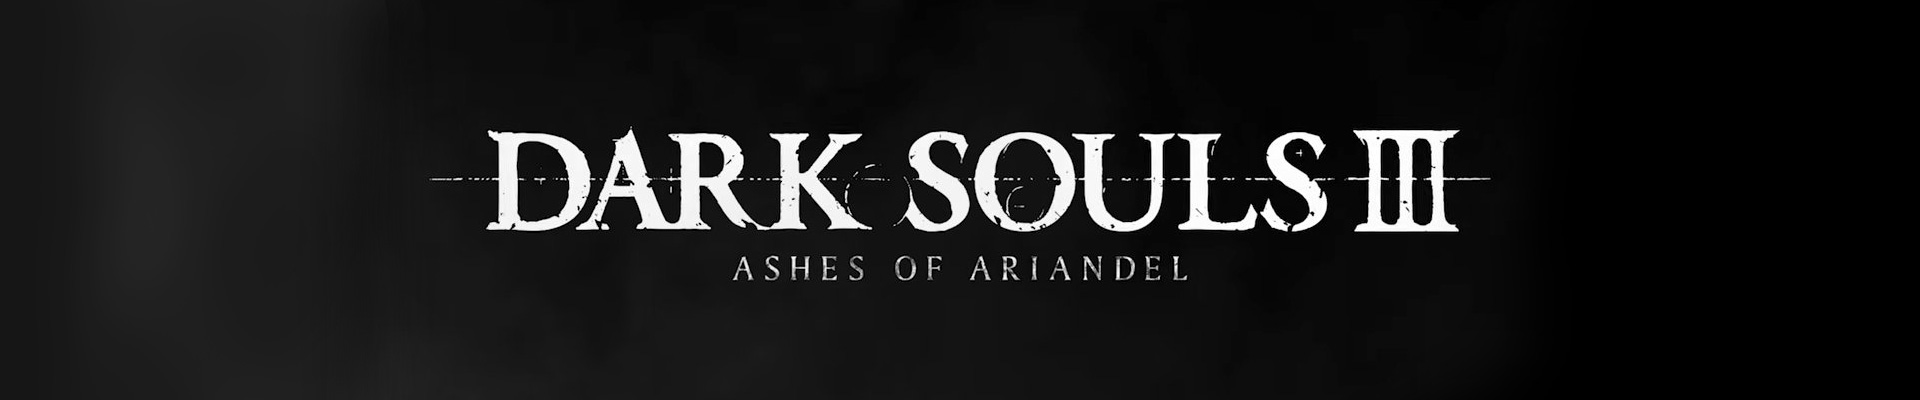 Dark Souls III — Ashes of Ariandel. Faded colours